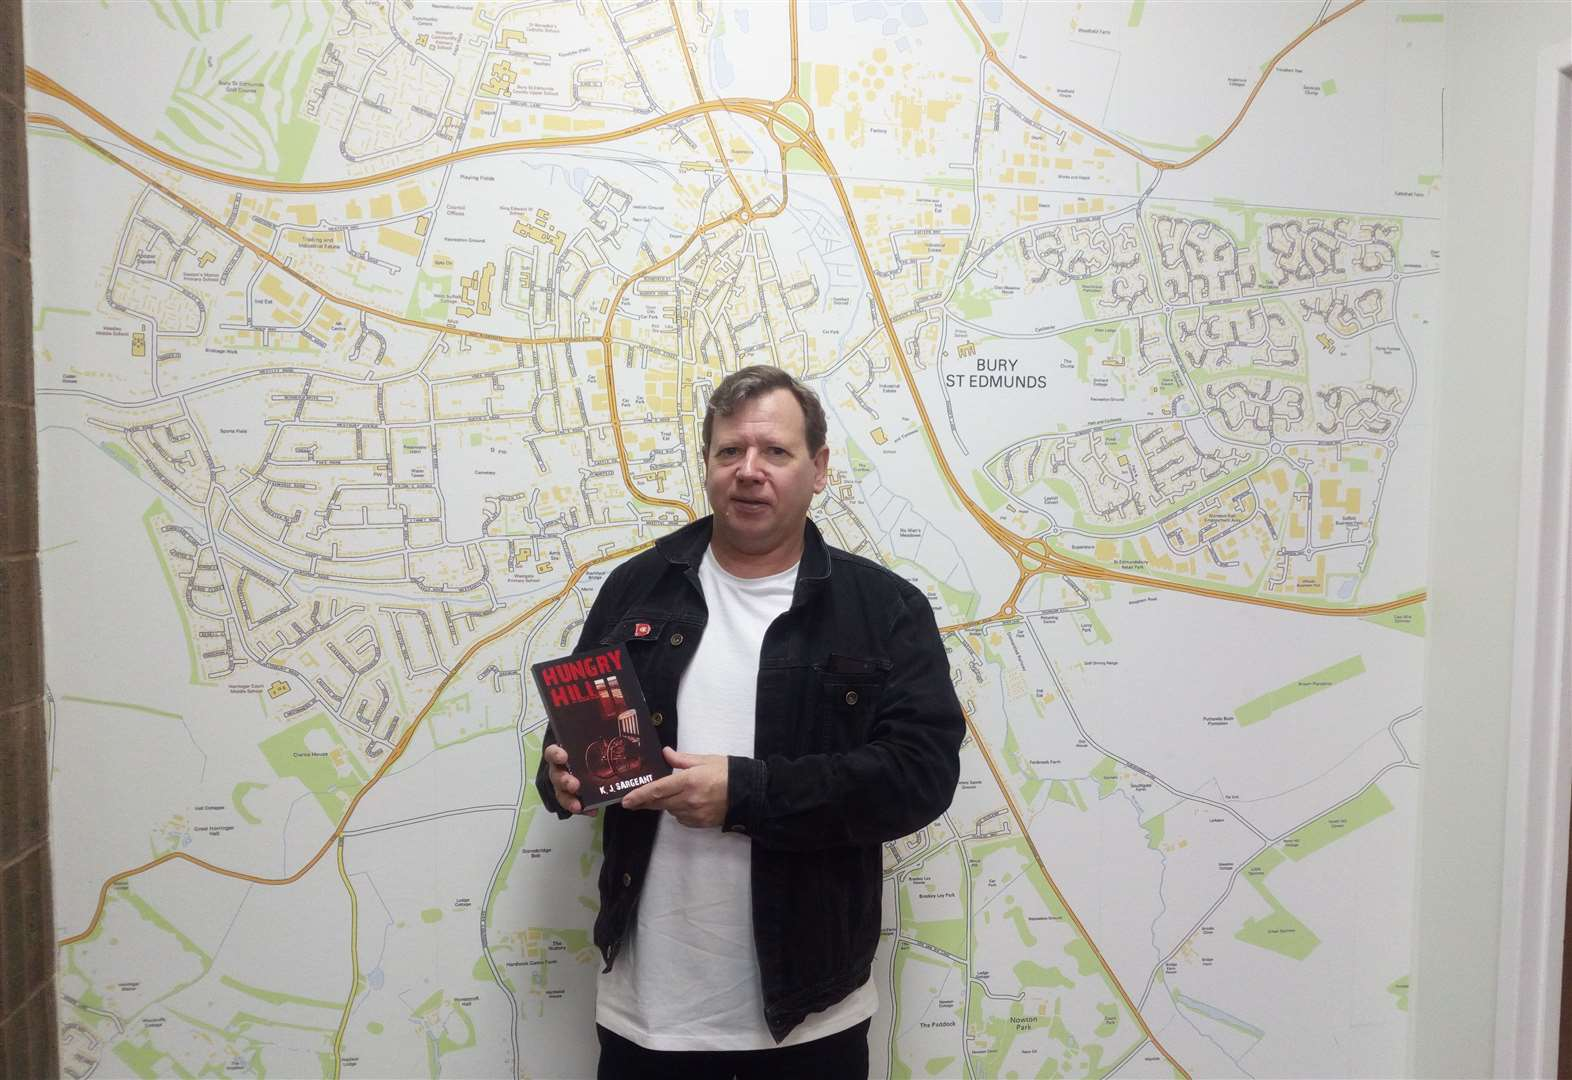 Crime writer chooses Bury St Edmunds as mystery setting